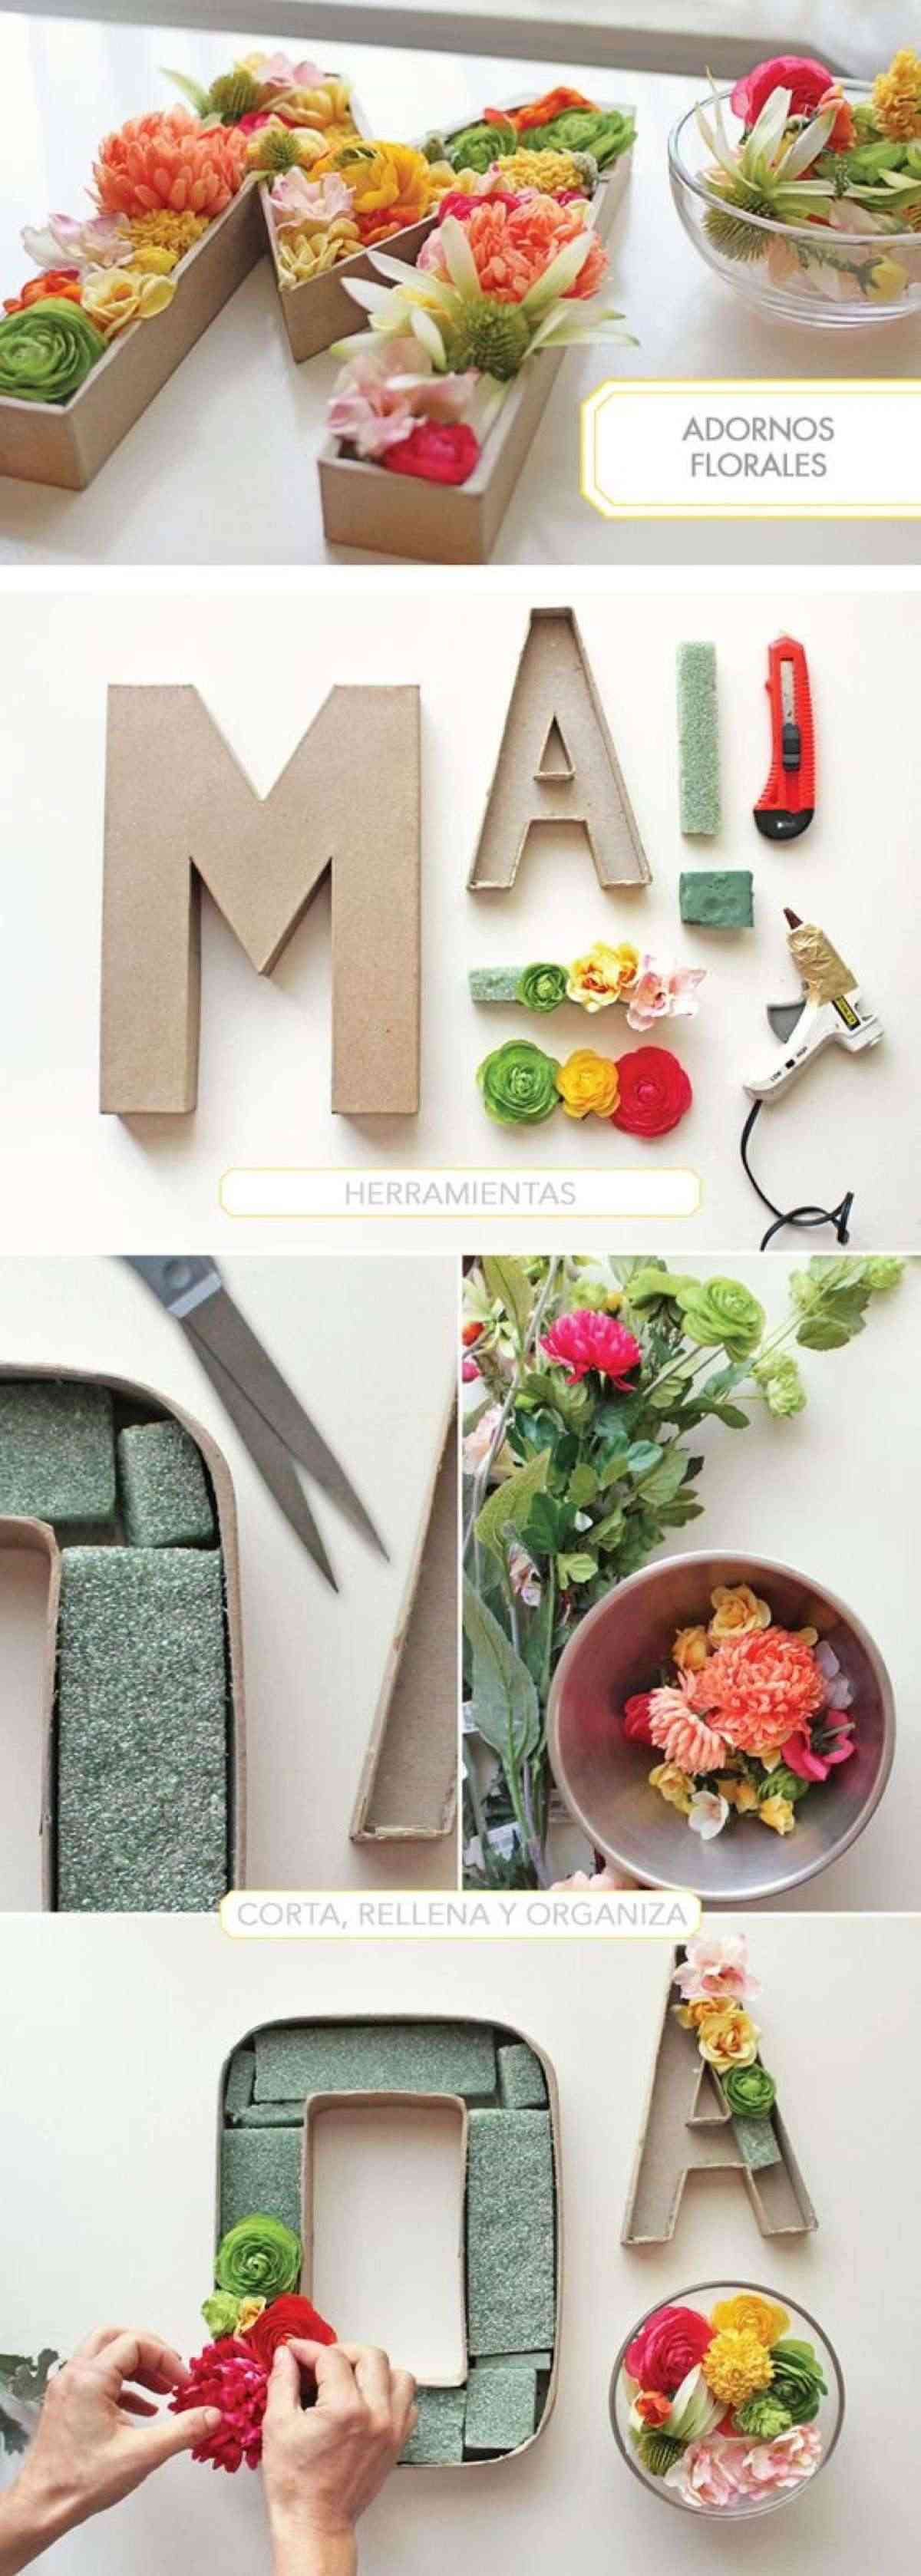 Manualidades c mo hacer letras con relieve para decorar - Letras para decorar ...